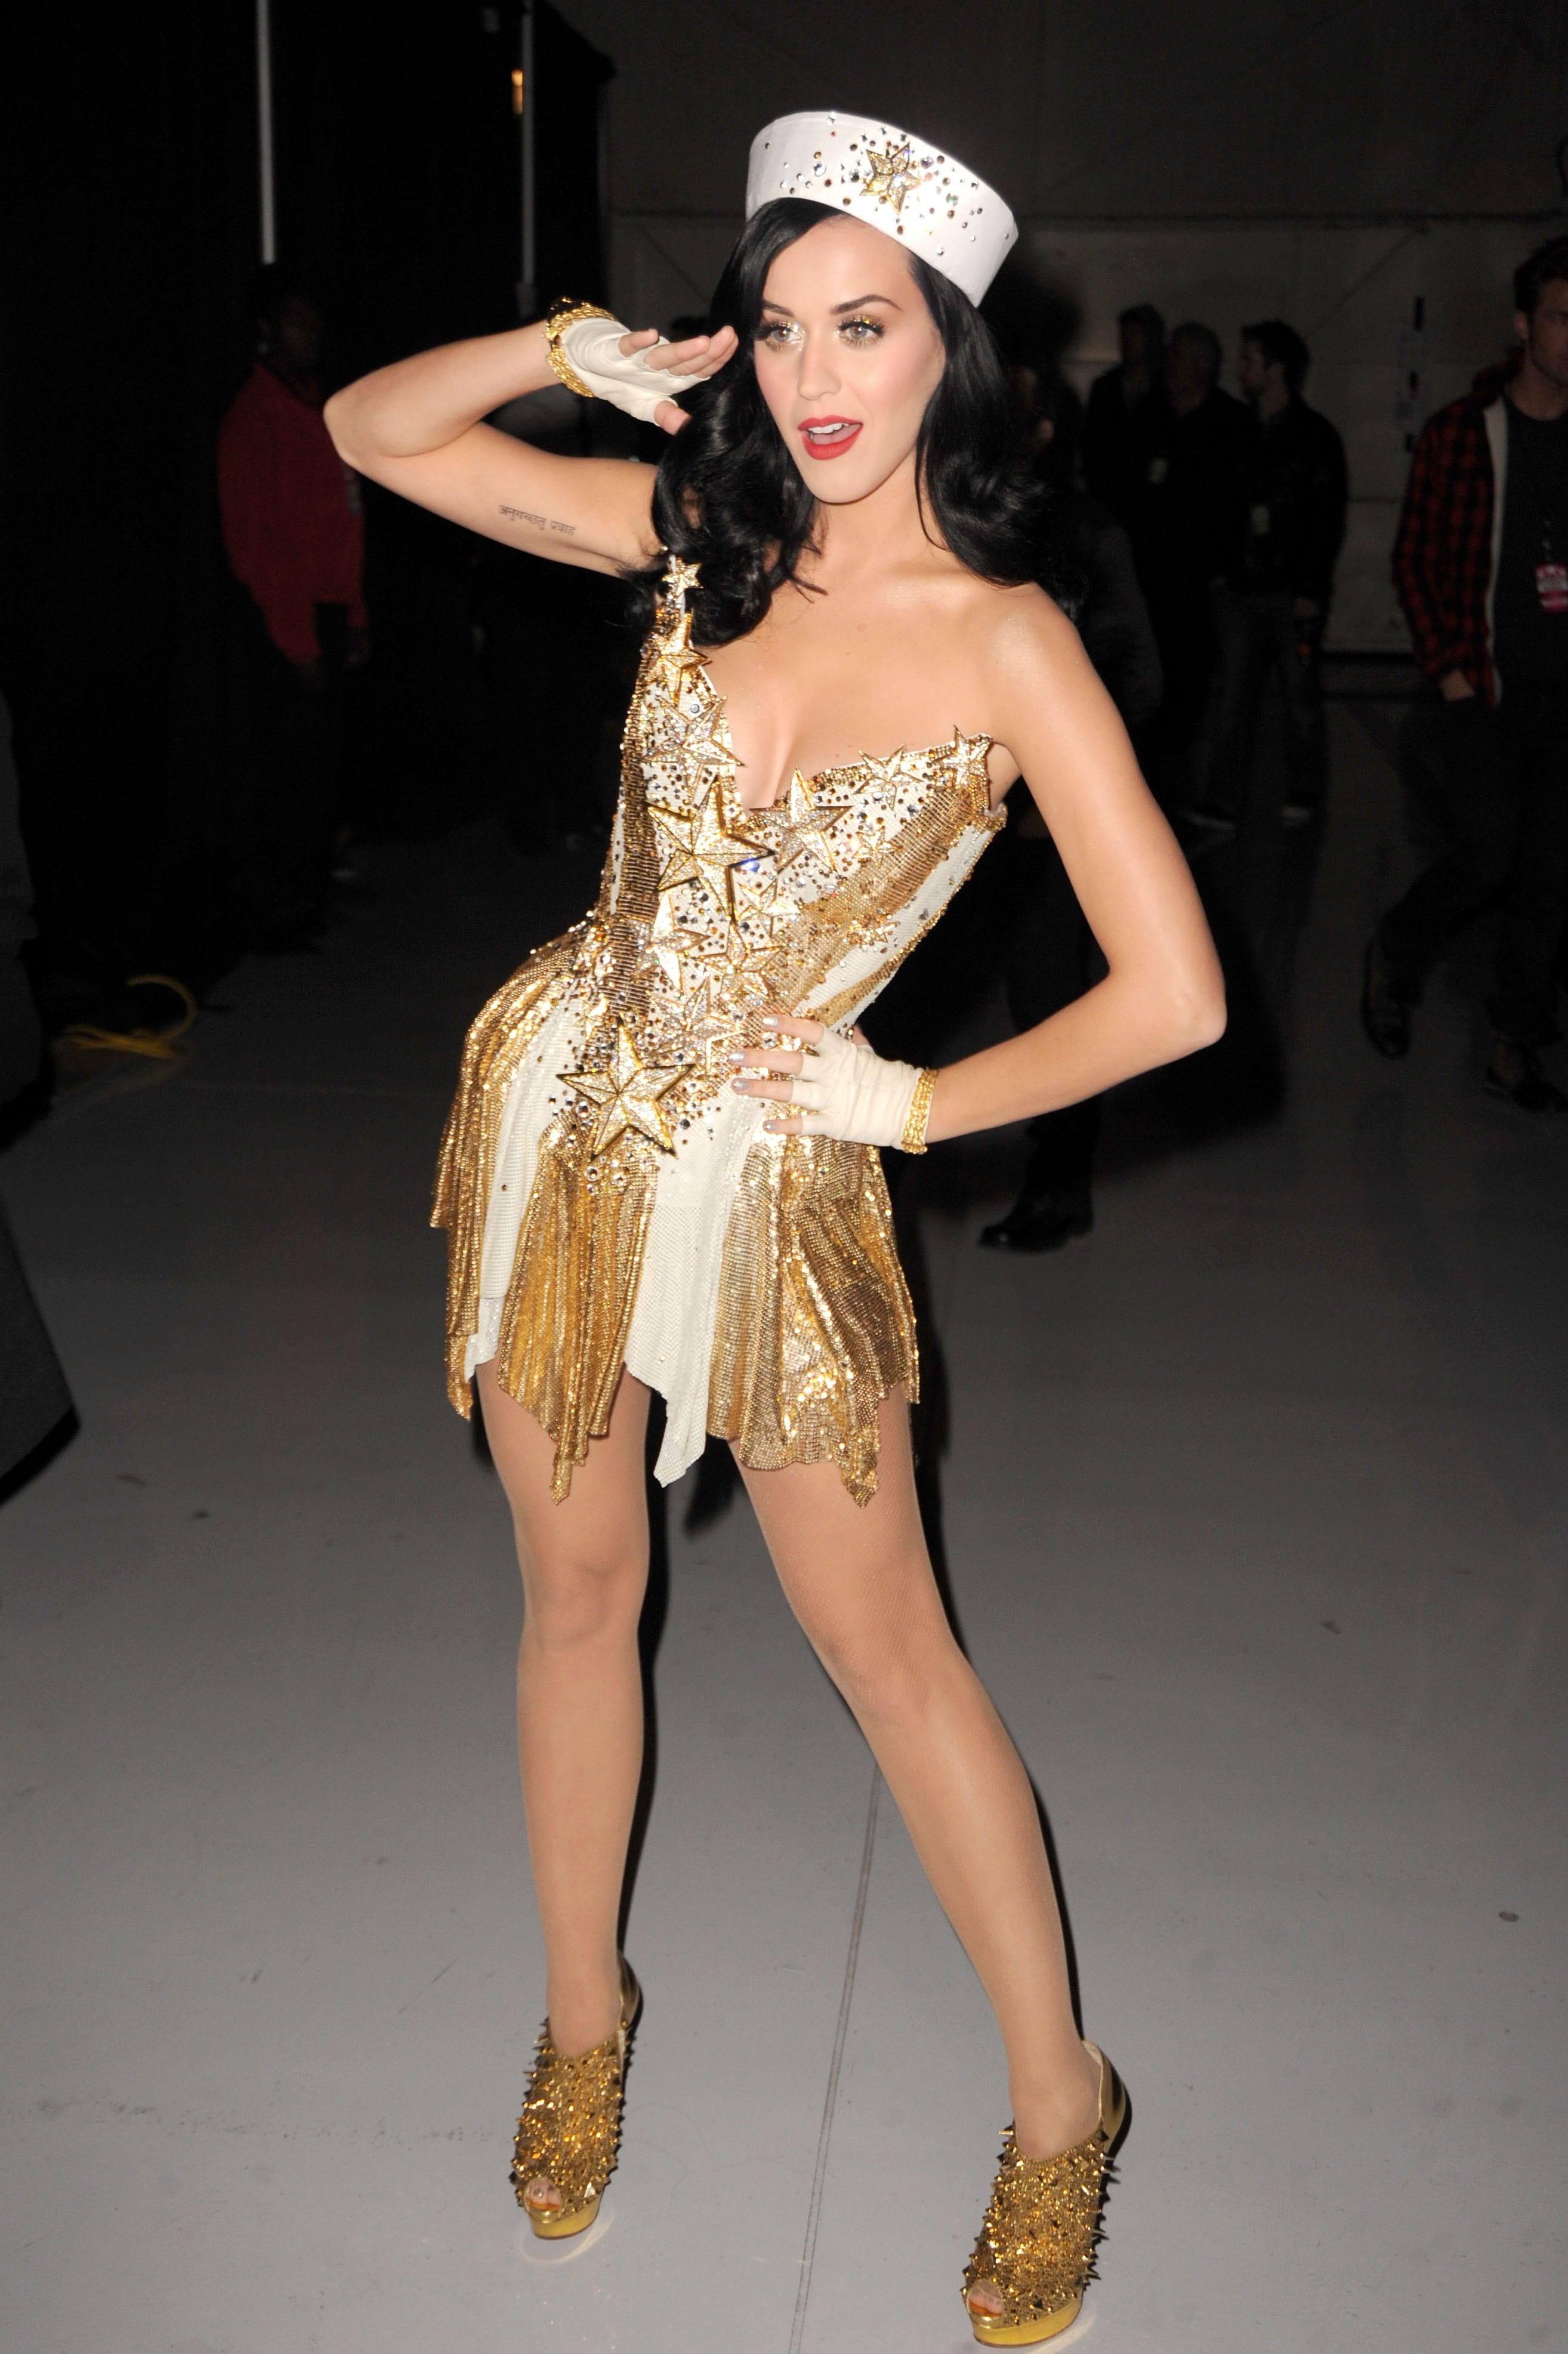 Katy Perry hot photos